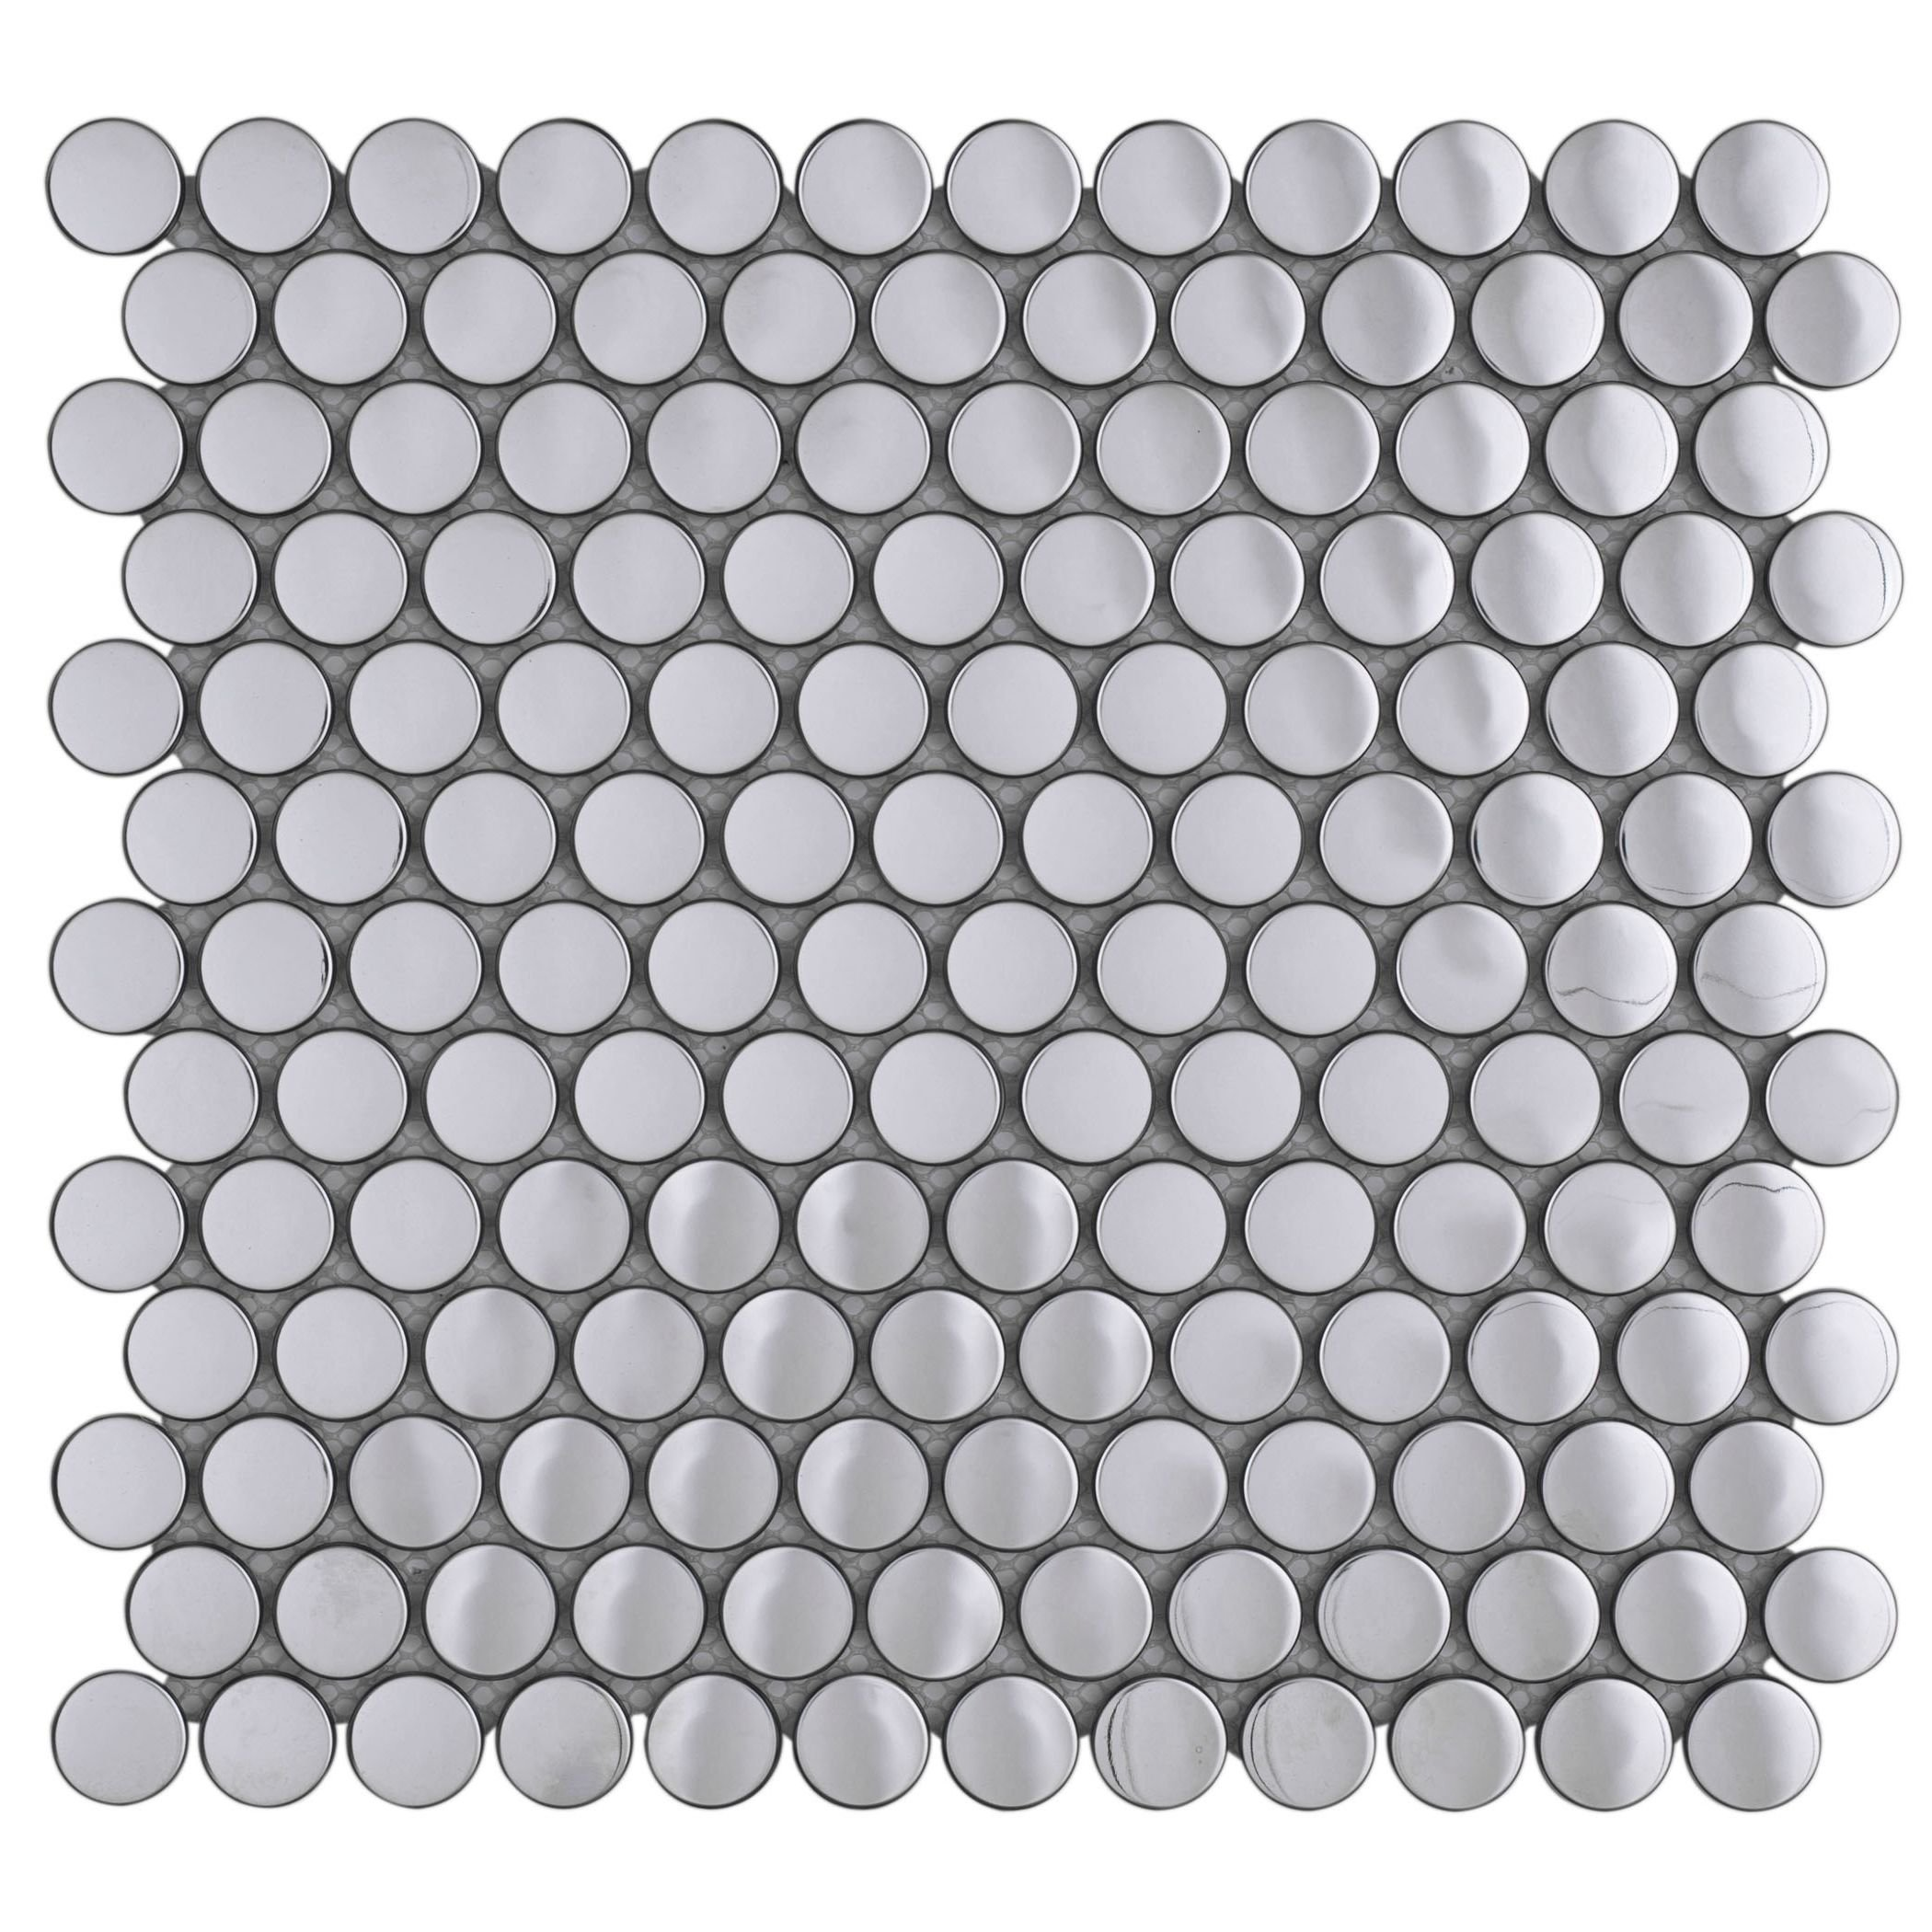 Penny Round Mirror Stainless Steel Metal Mosaic Tile for Kitchen Backsplash (10 Sheets)